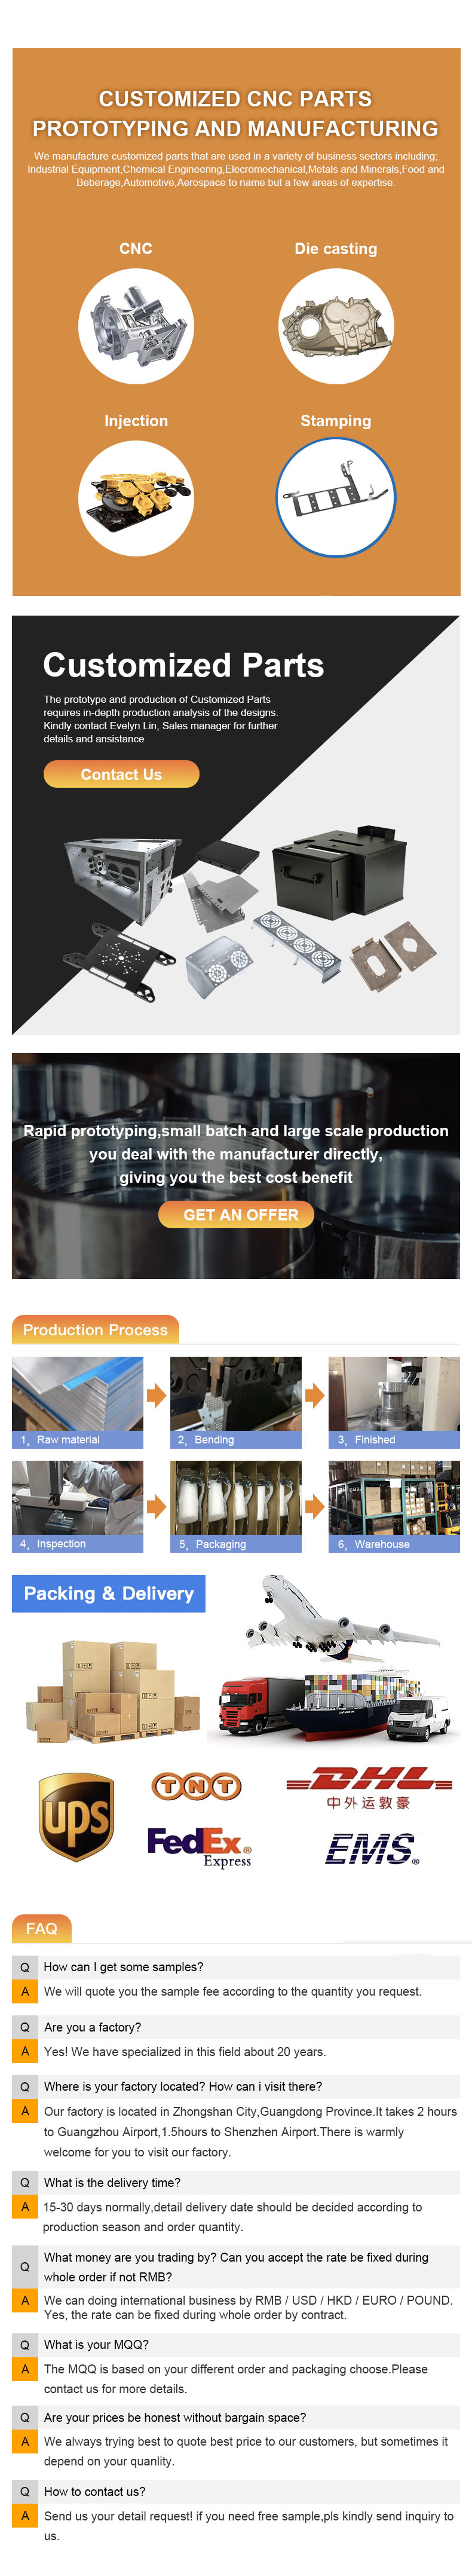 stamping parts,CNC MACHINING PARTS,PRECISION CNC MACHINING PARTS,CNC ALUMINUM PARTS,Machined Products,CNC Machined Products,BoYang Hardware Products